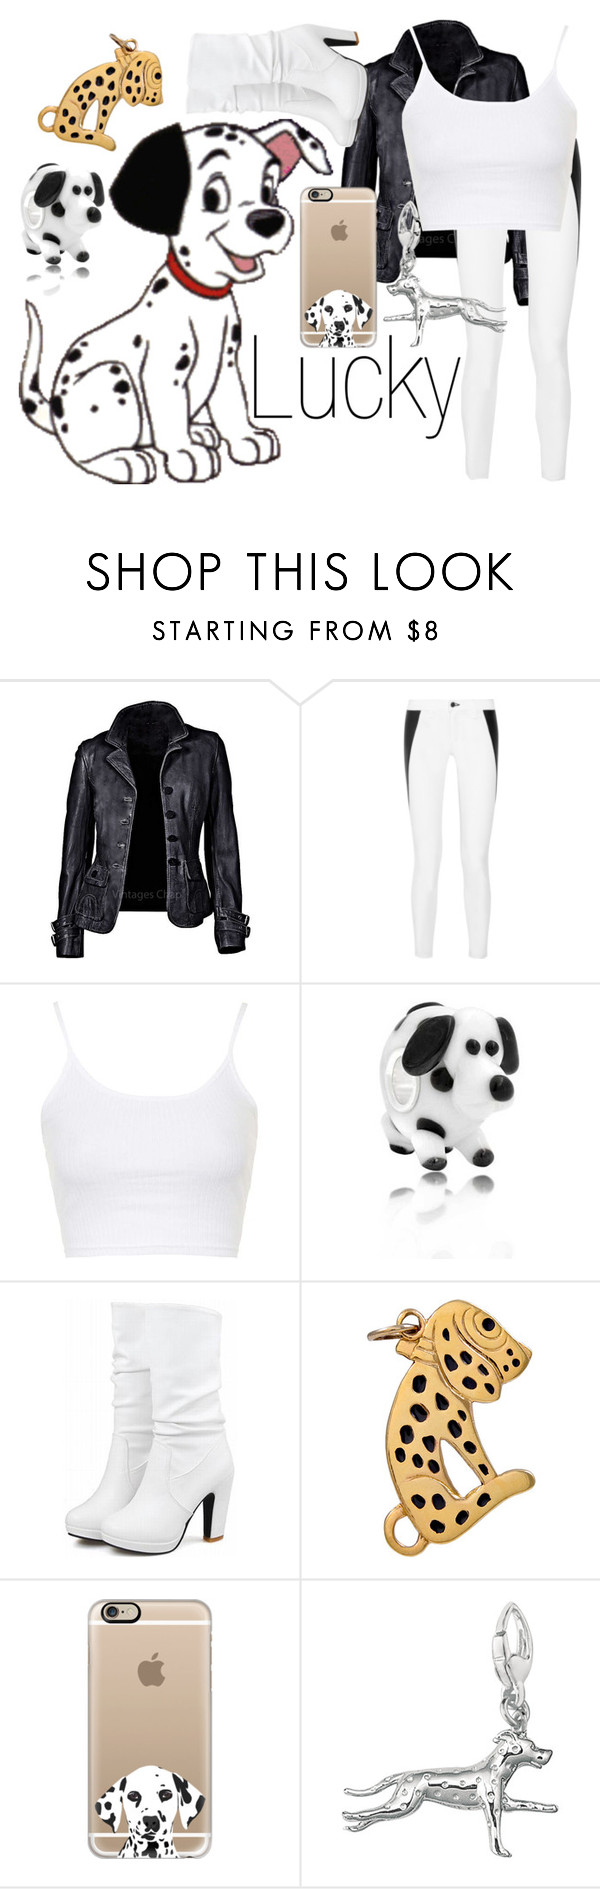 """""""Lucky~ DisneyBound"""" by basic-disney ❤ liked on Polyvore featuring Disney, rag & bone, Topshop, Bling Jewelry and Casetify"""